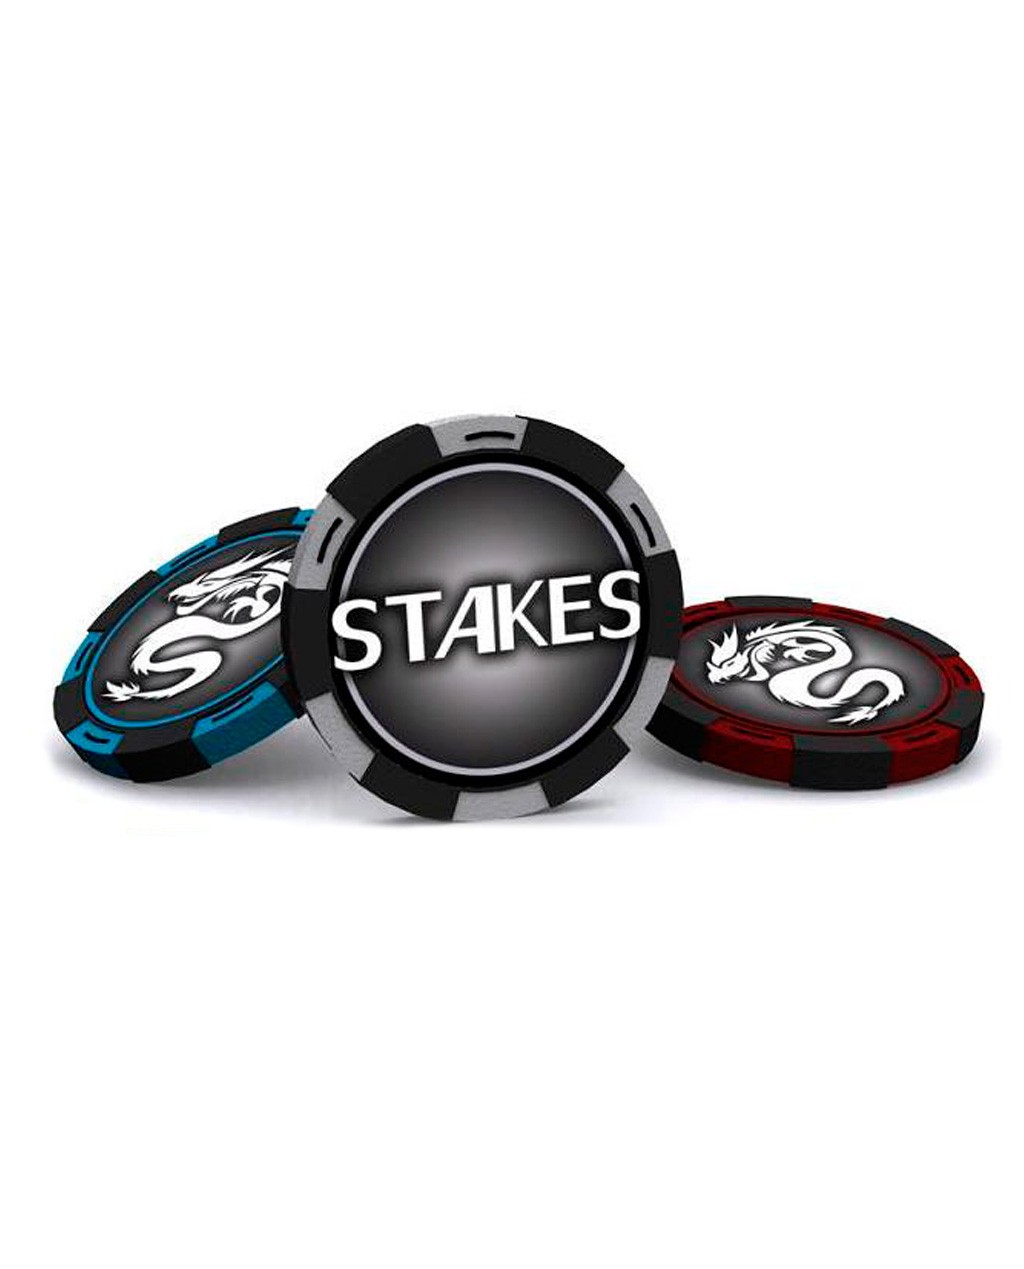 200Pcs STAKES CLAY Poker Chips Set